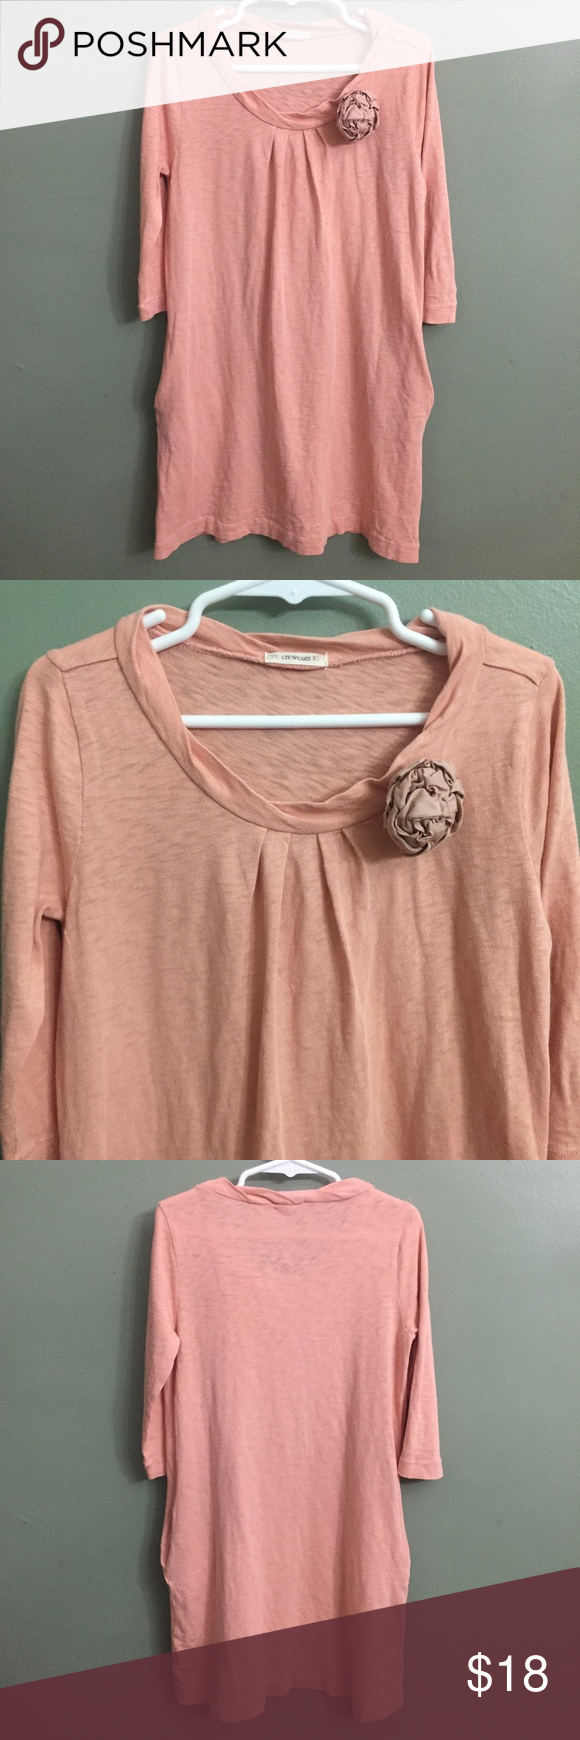 """🎈B2G1🎈EUC Crewcuts Pink Cotton Dress, 6/7 Crewcuts Pink Cotton Dress, has pockets and flower accent, 6/7. EUC despite small pen mark on left sleeve as picture.🎈This item is eligible for the """"Buy 2 Get 1 Free"""" promotion in my closet with a minimum purchase of $15. Free items are to be of equal or lesser in value than the other items. Crewcuts Dresses"""